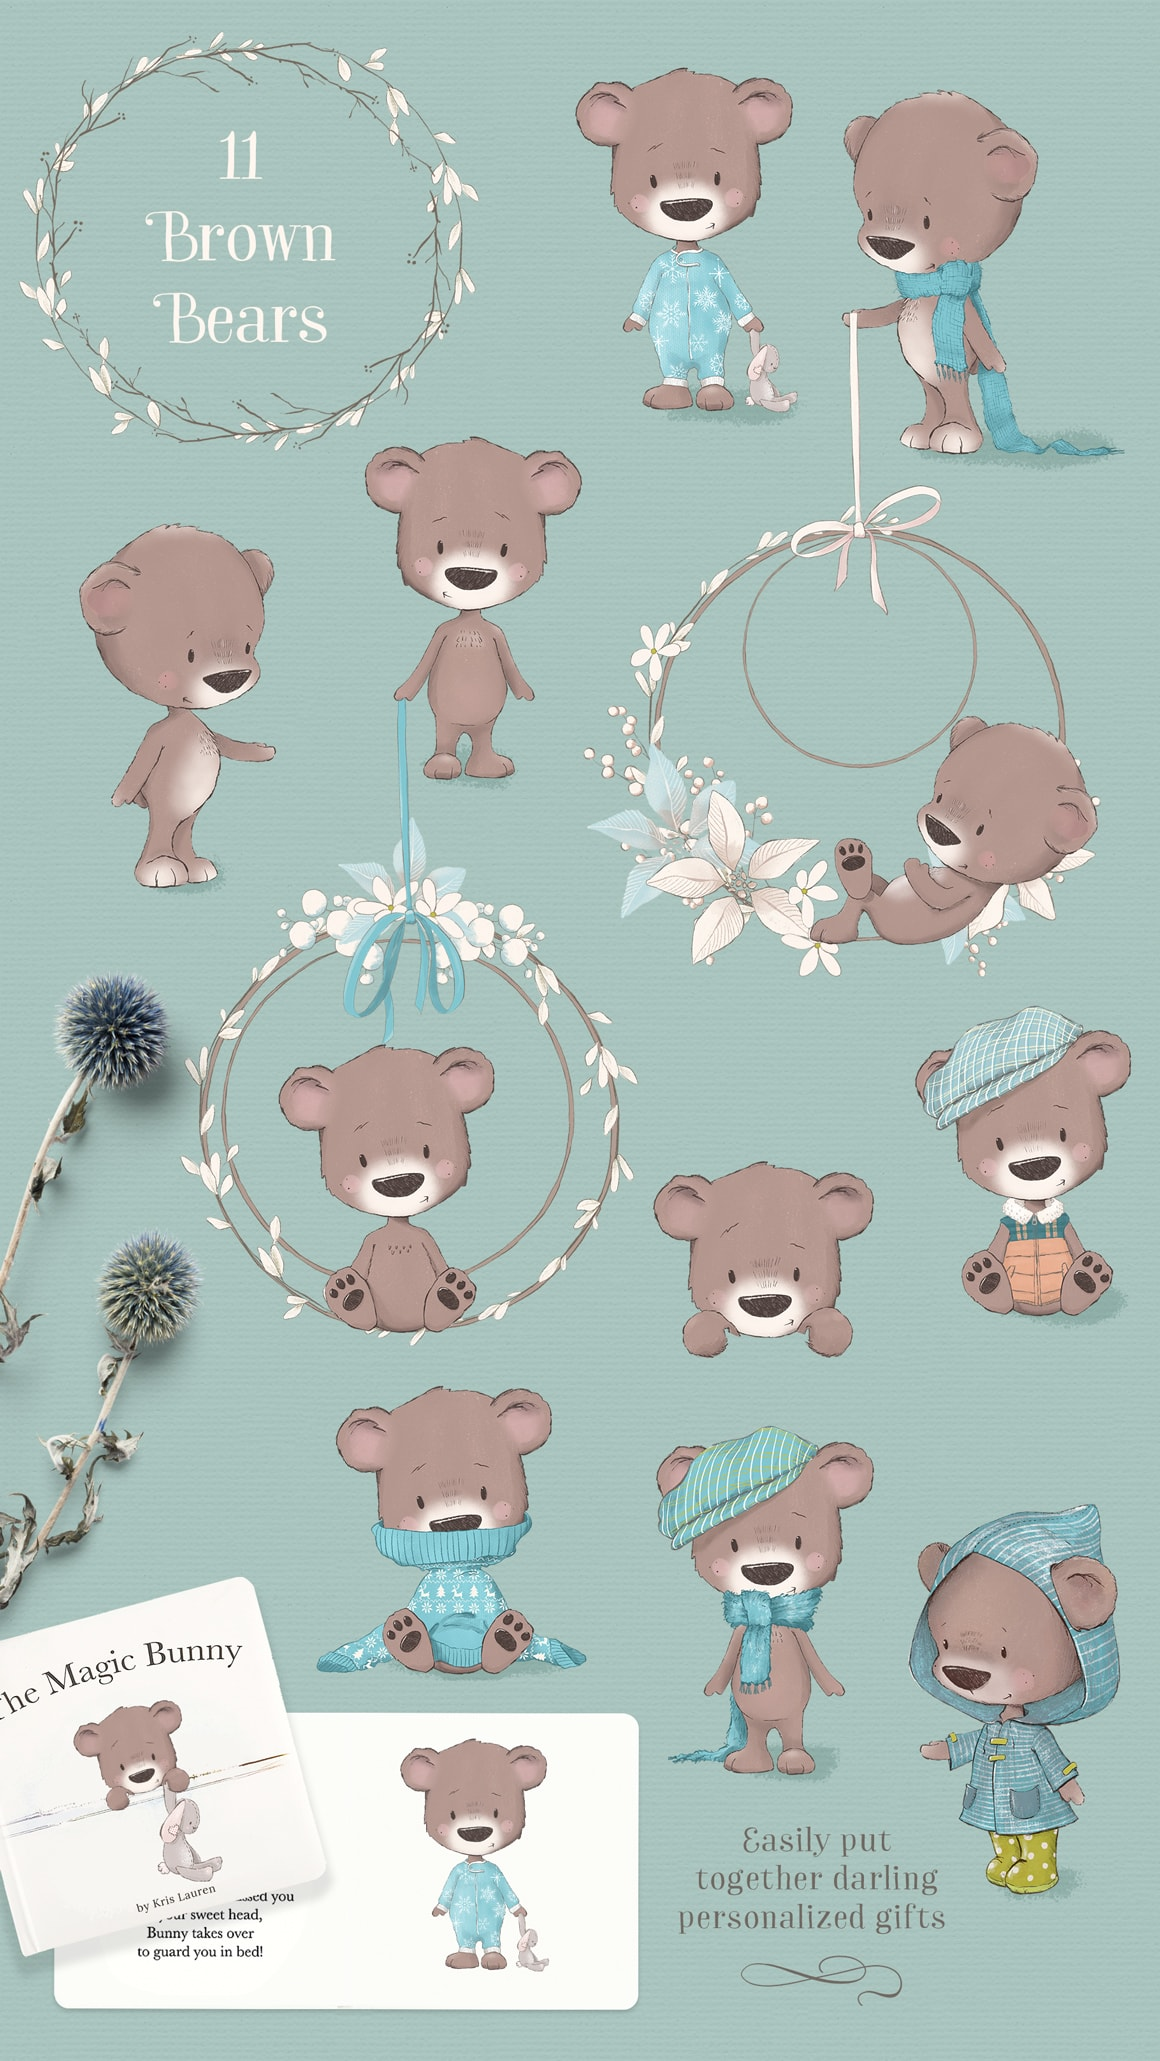 Cute Bears clipart illustrations